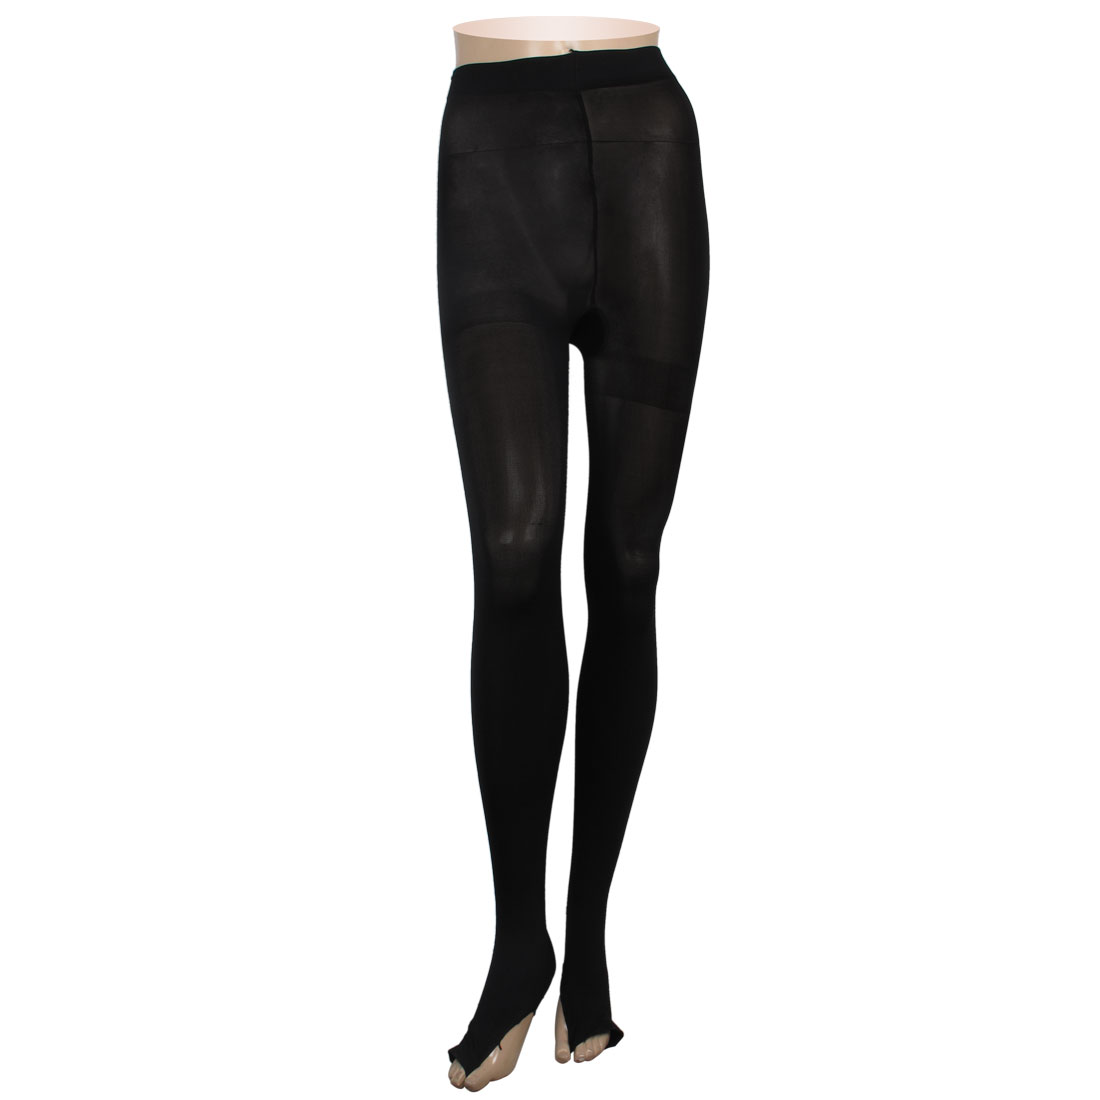 Black Tightfitting Stretchy Stirrup Leggings Tights for Ladies XS